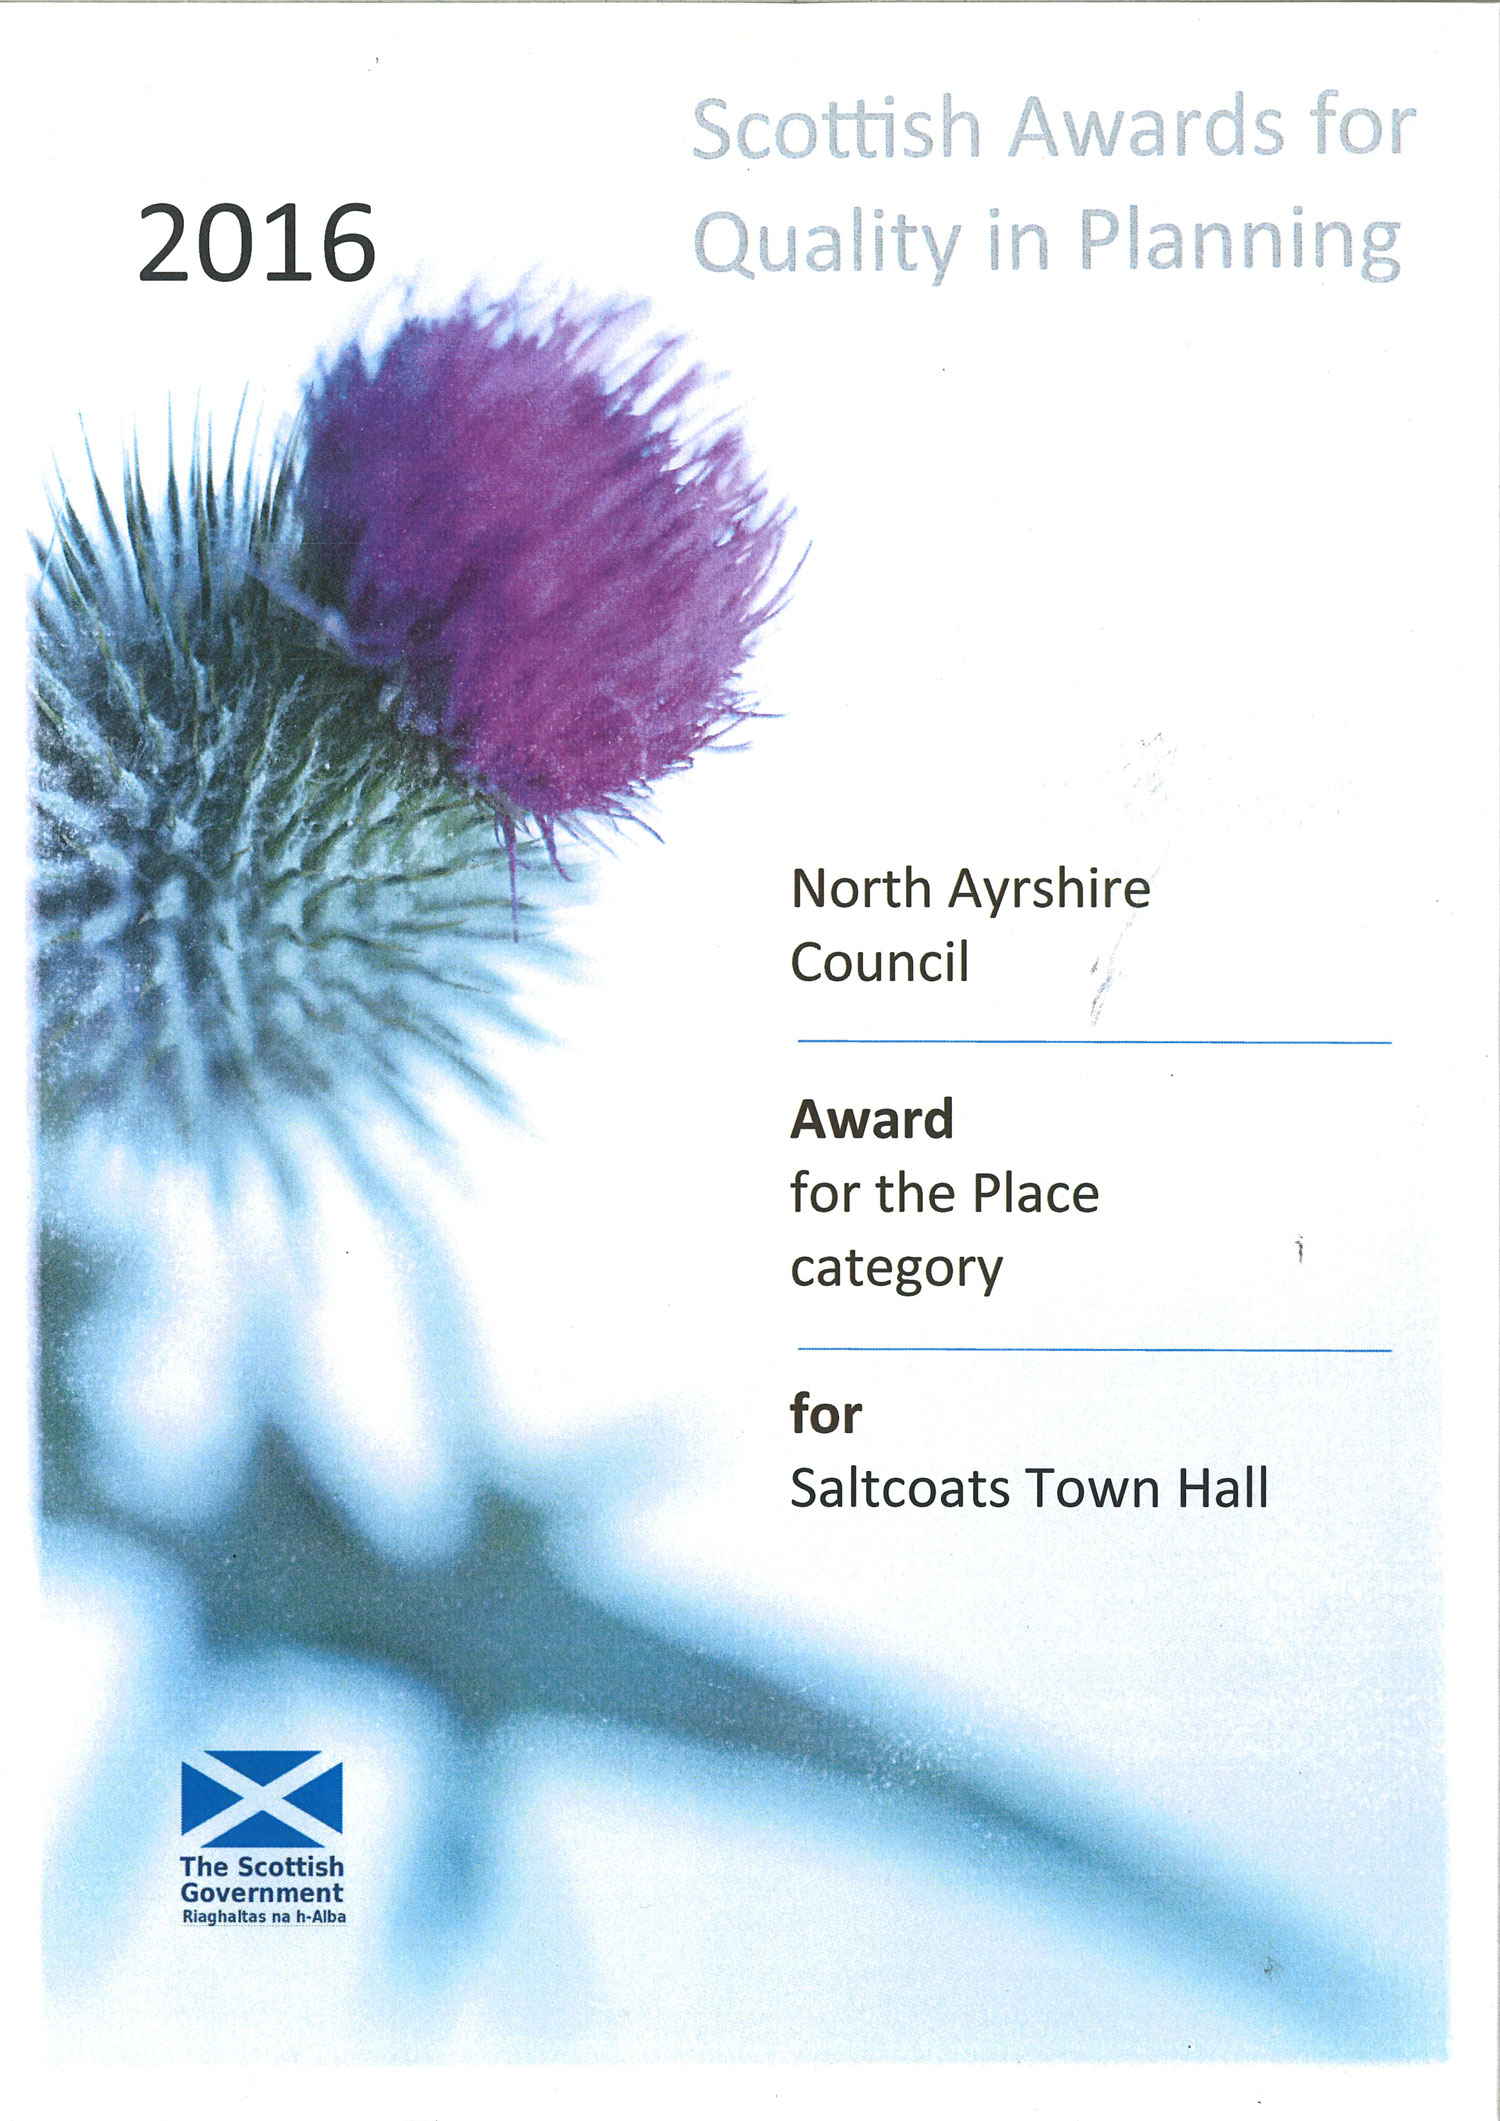 Scottish Awards for Quality in Planning 2016